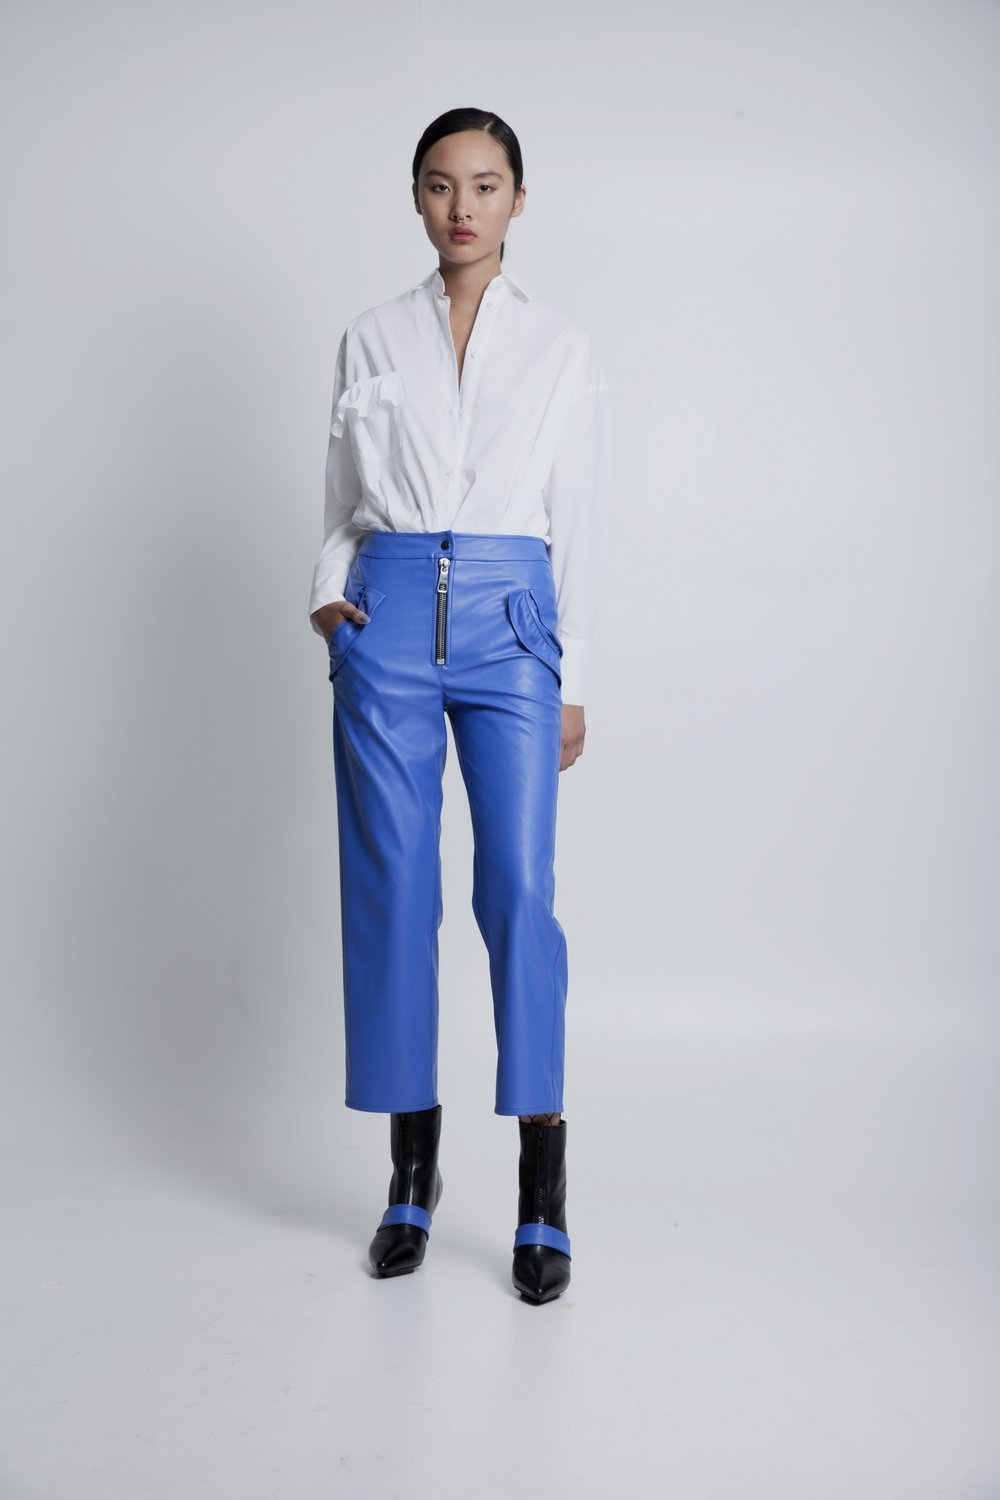 70% OFF Vegan leather pants blue